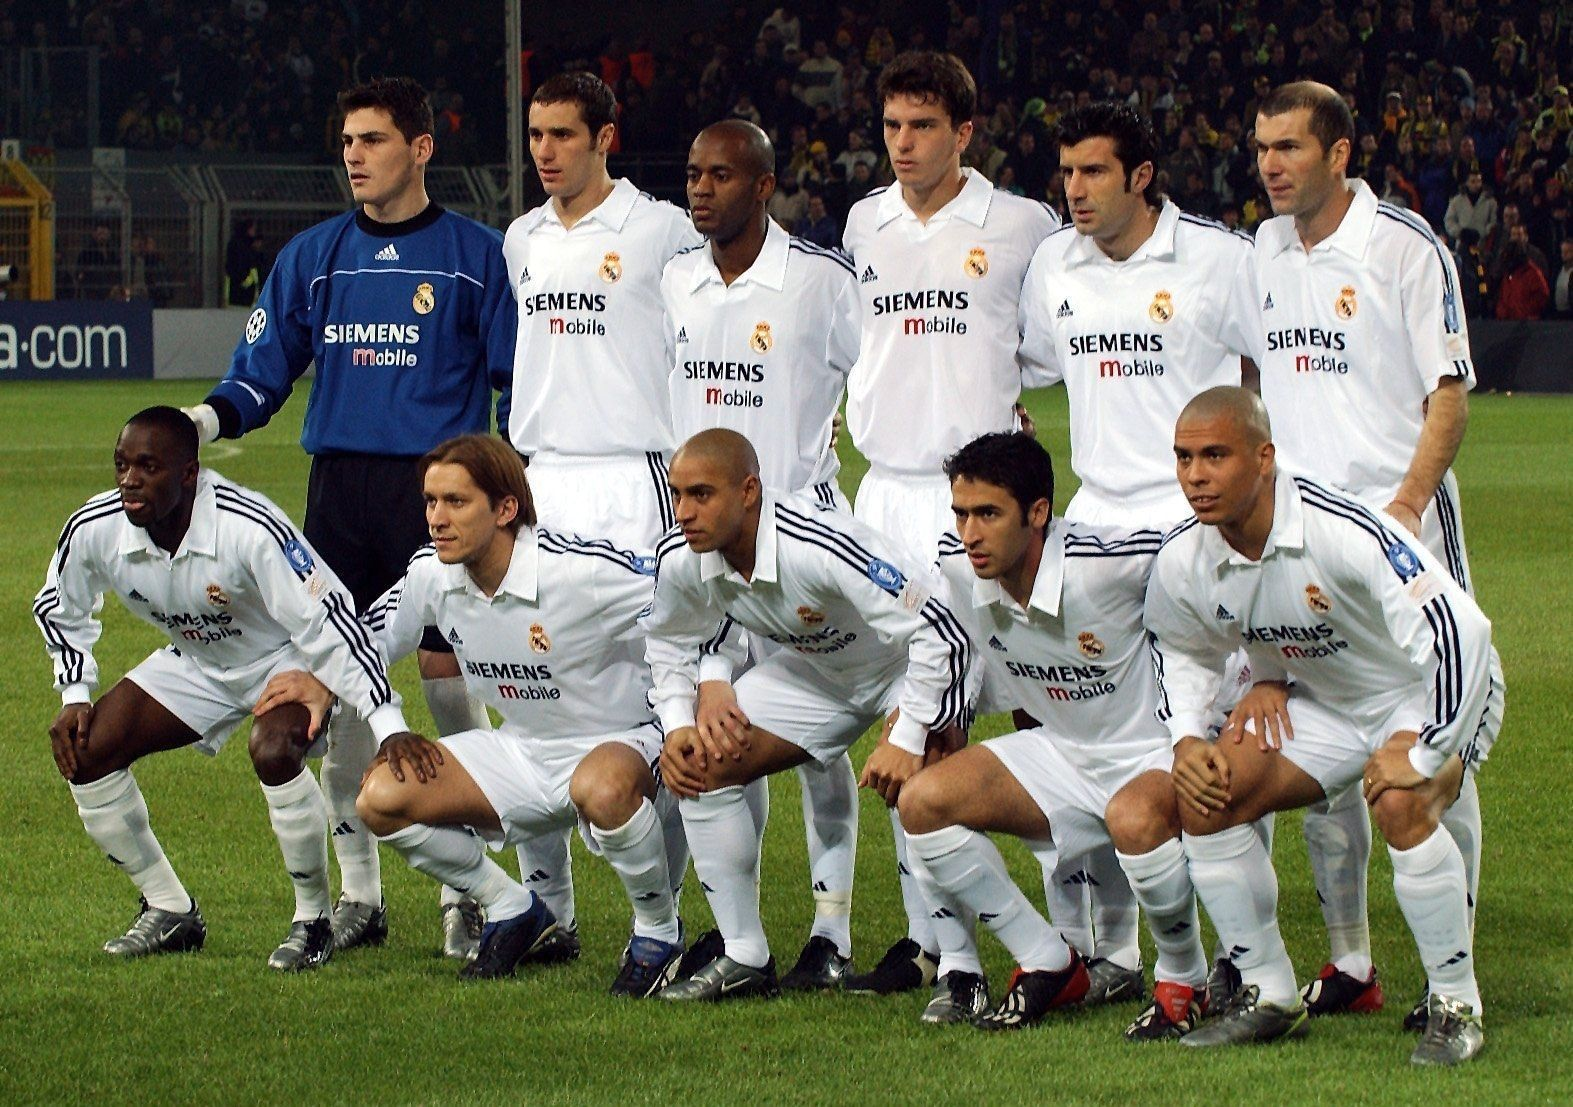 Real Madrid v roce 2003